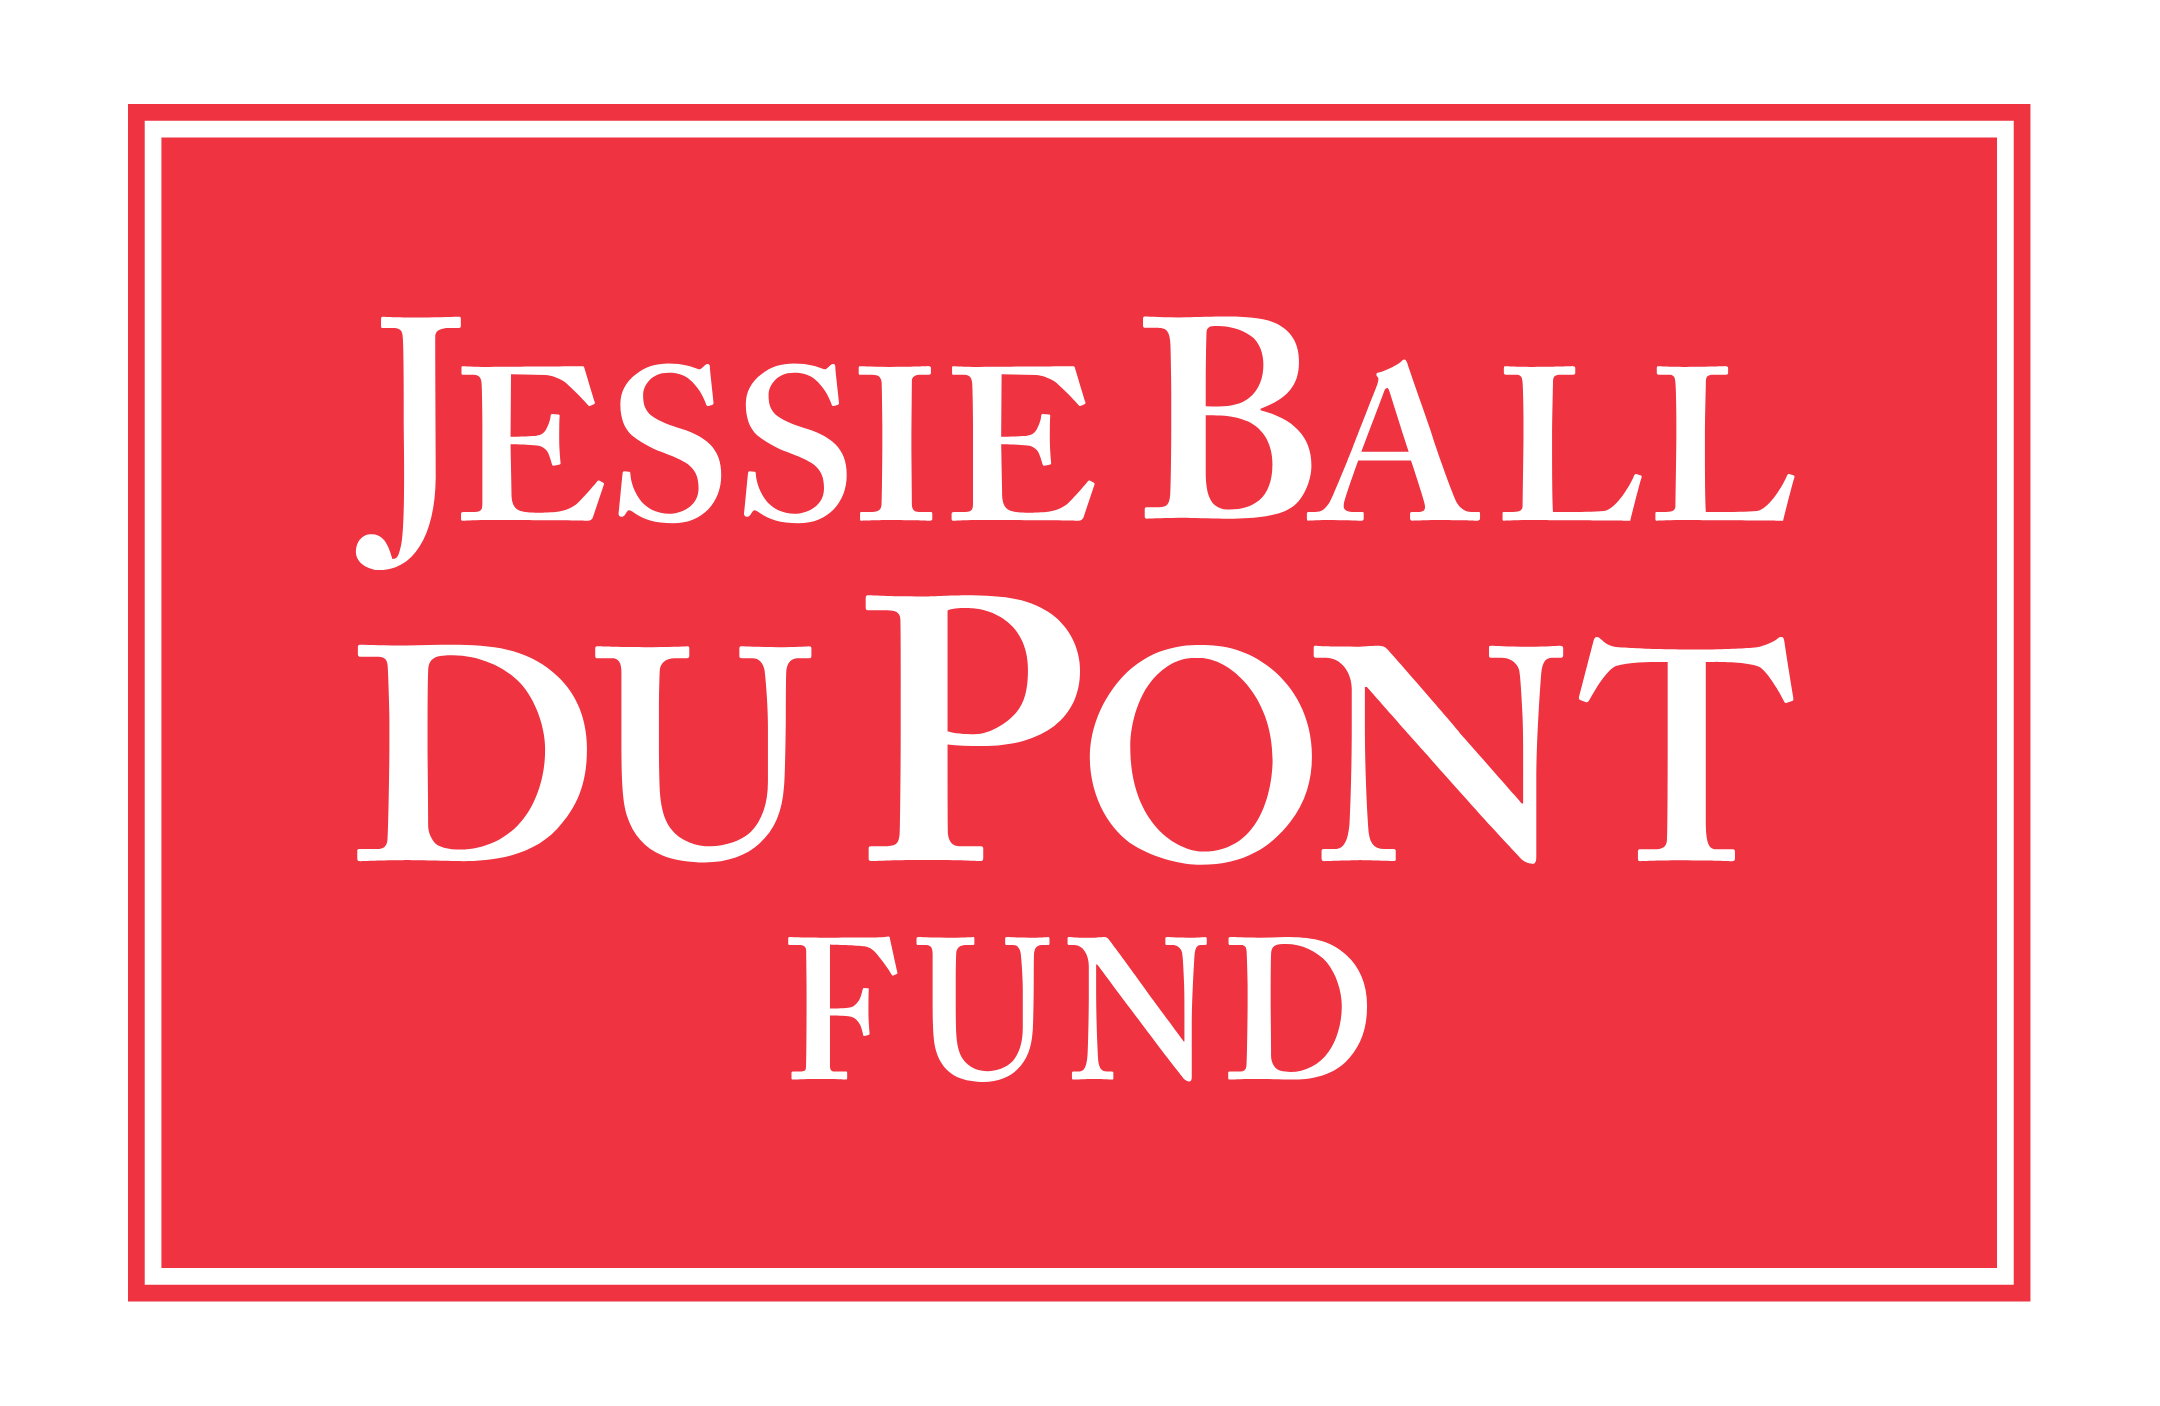 Jessie Ball DuPont Fund logo